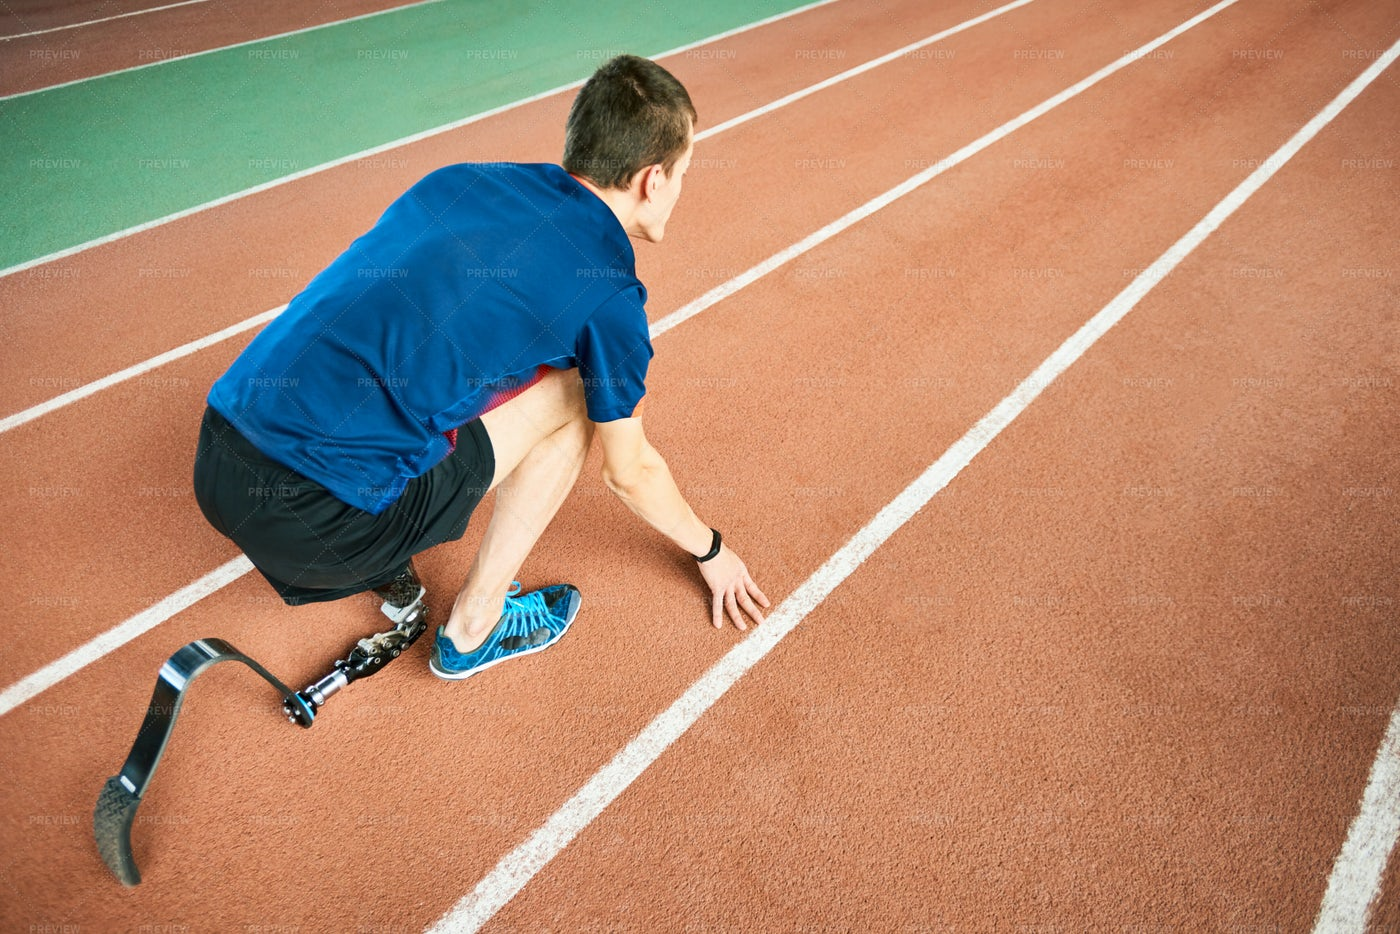 Handicapped Sportsman Ready To Run: Stock Photos